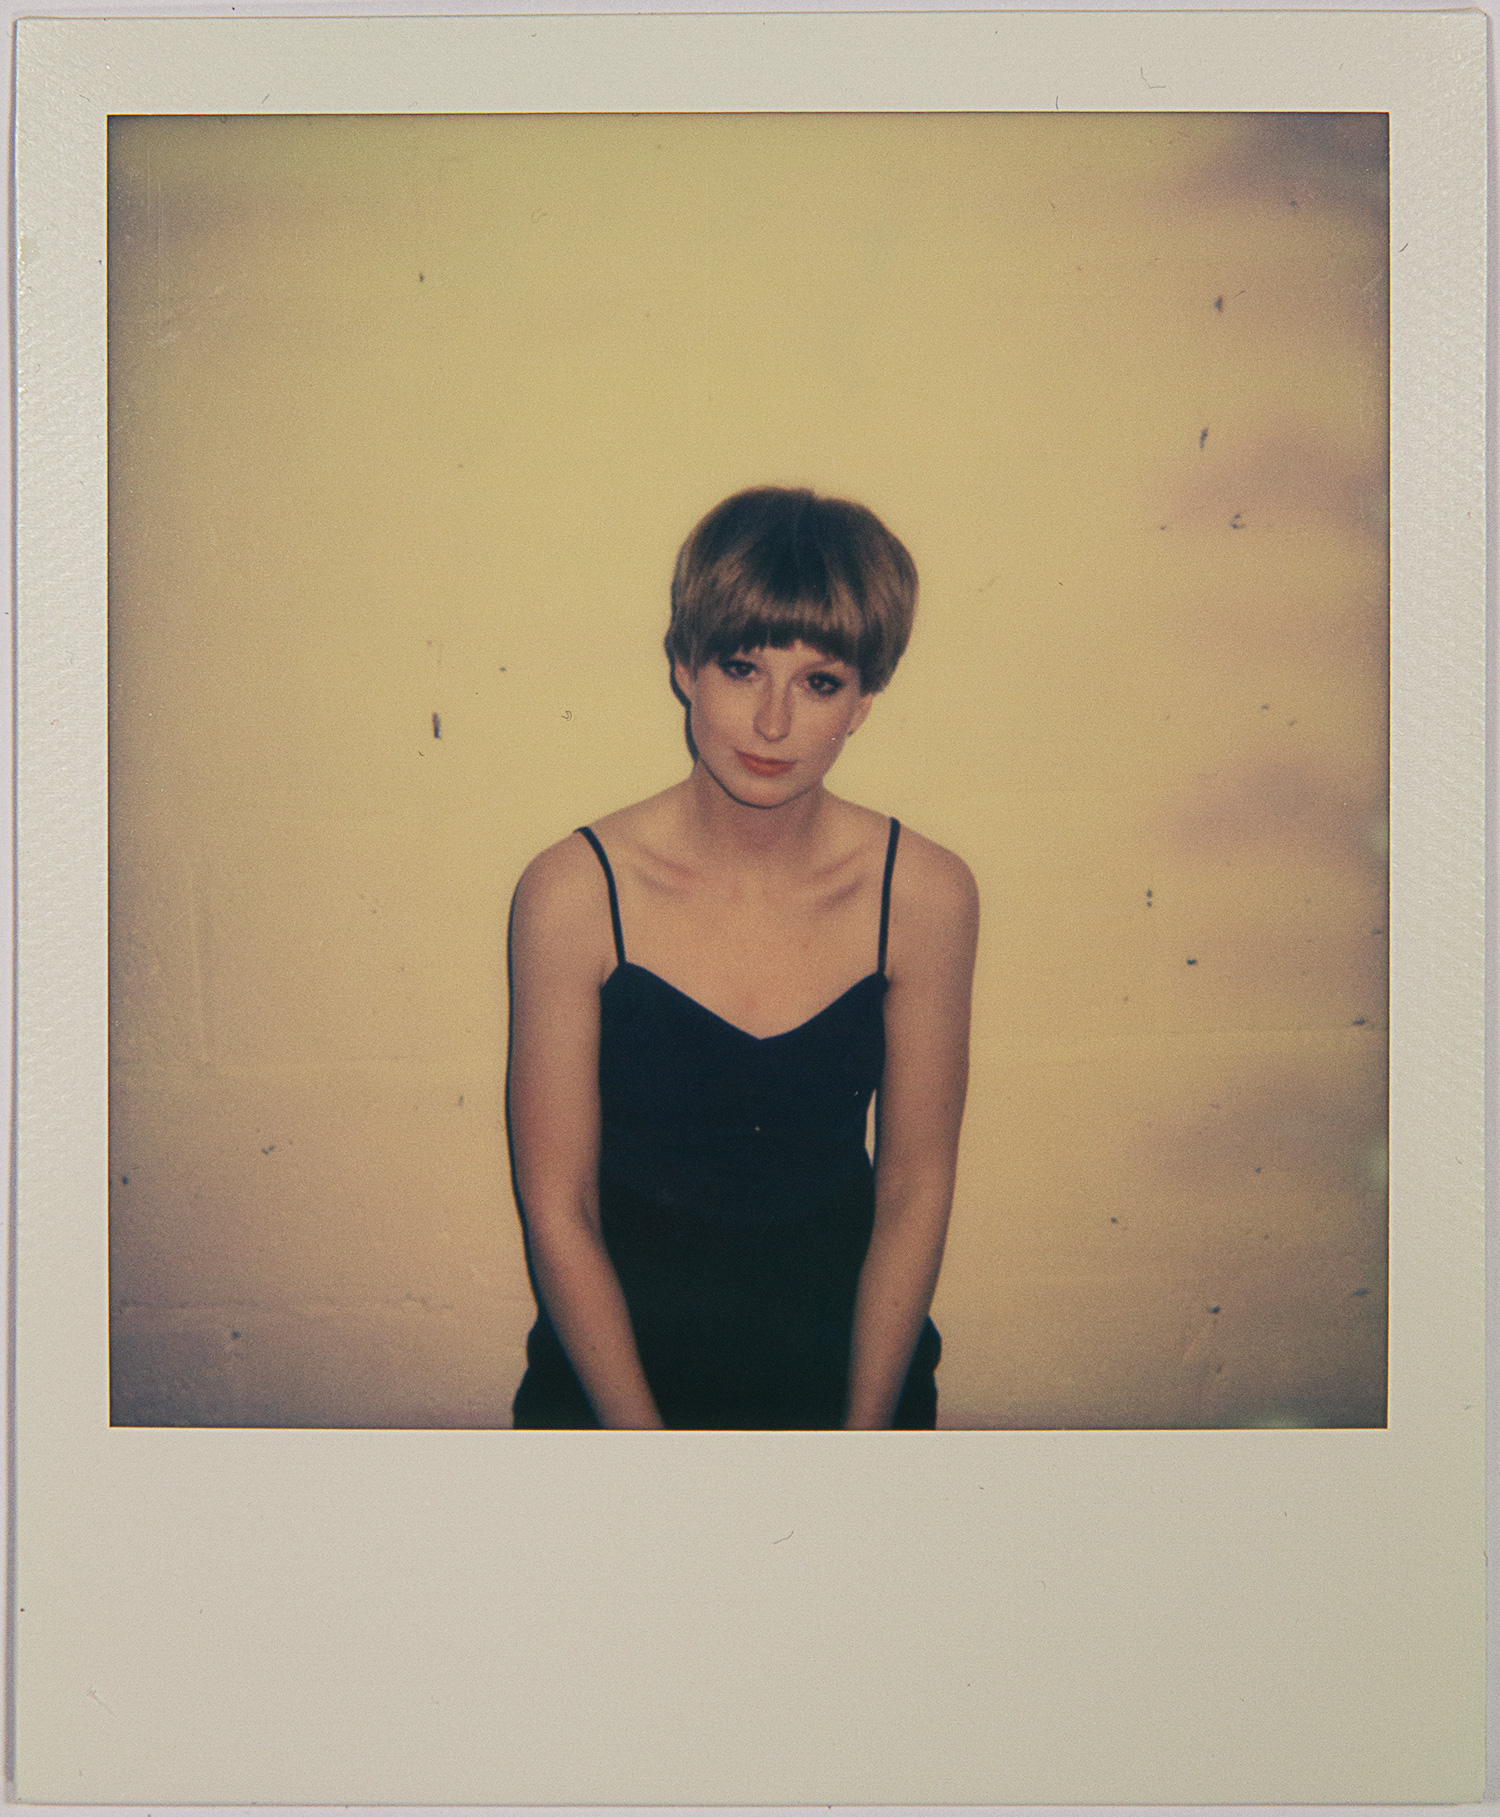 PYLOT ISSUE 04 LAUNCH PARTY IMPOSSIBLE PROJECT 14